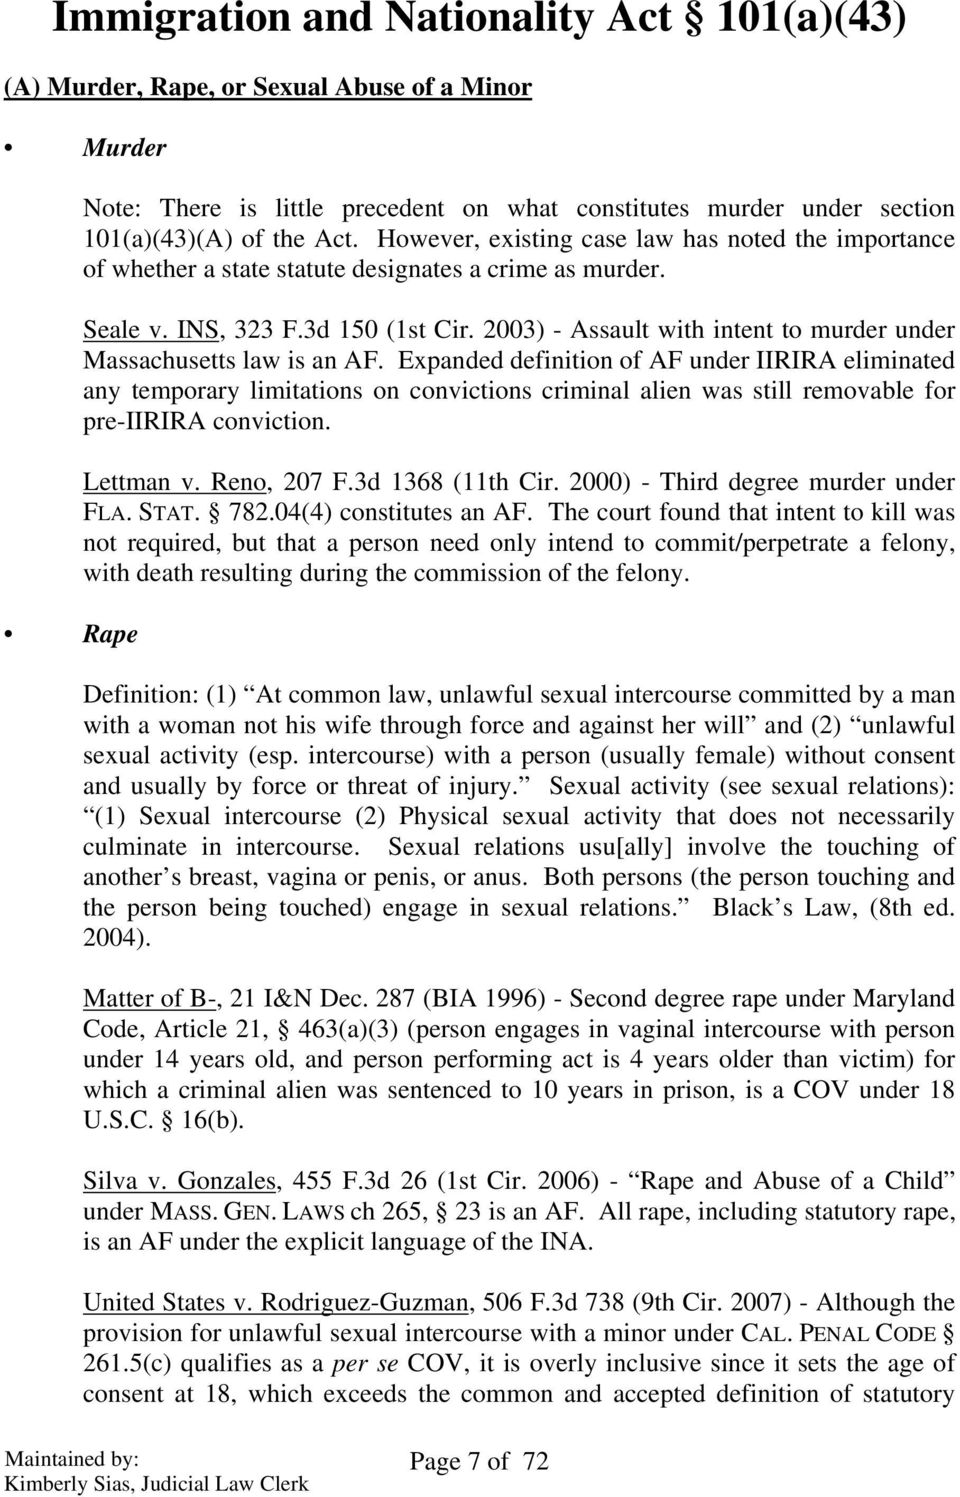 2003) - Assault with intent to murder under Massachusetts law is an AF.